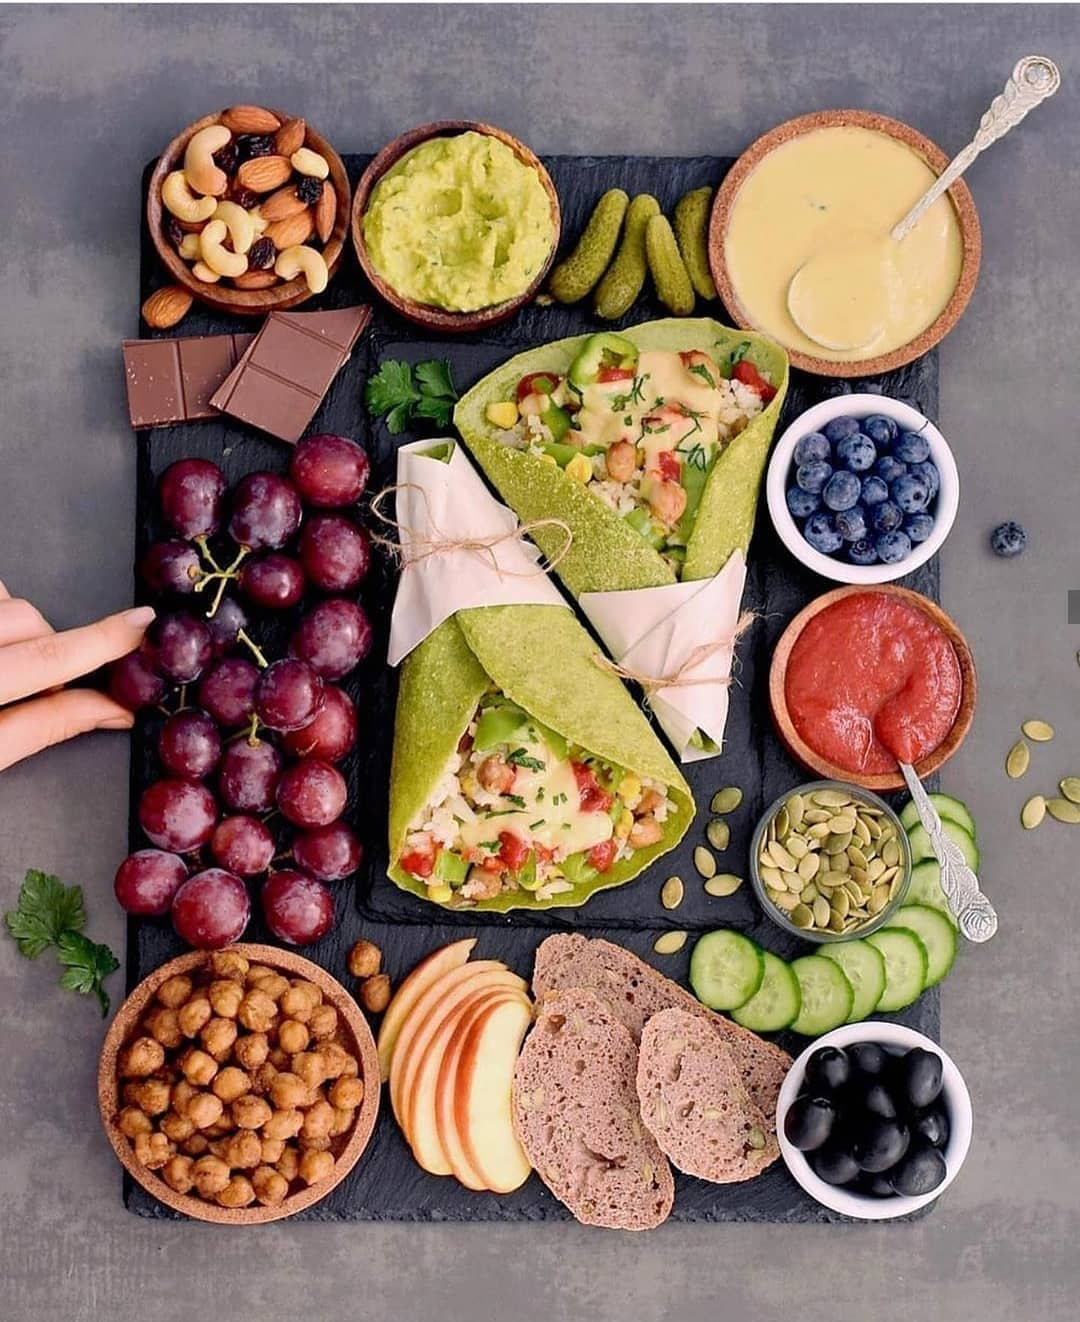 delicious vegan platter with homemade spinach wraps i also display image  a654cb74